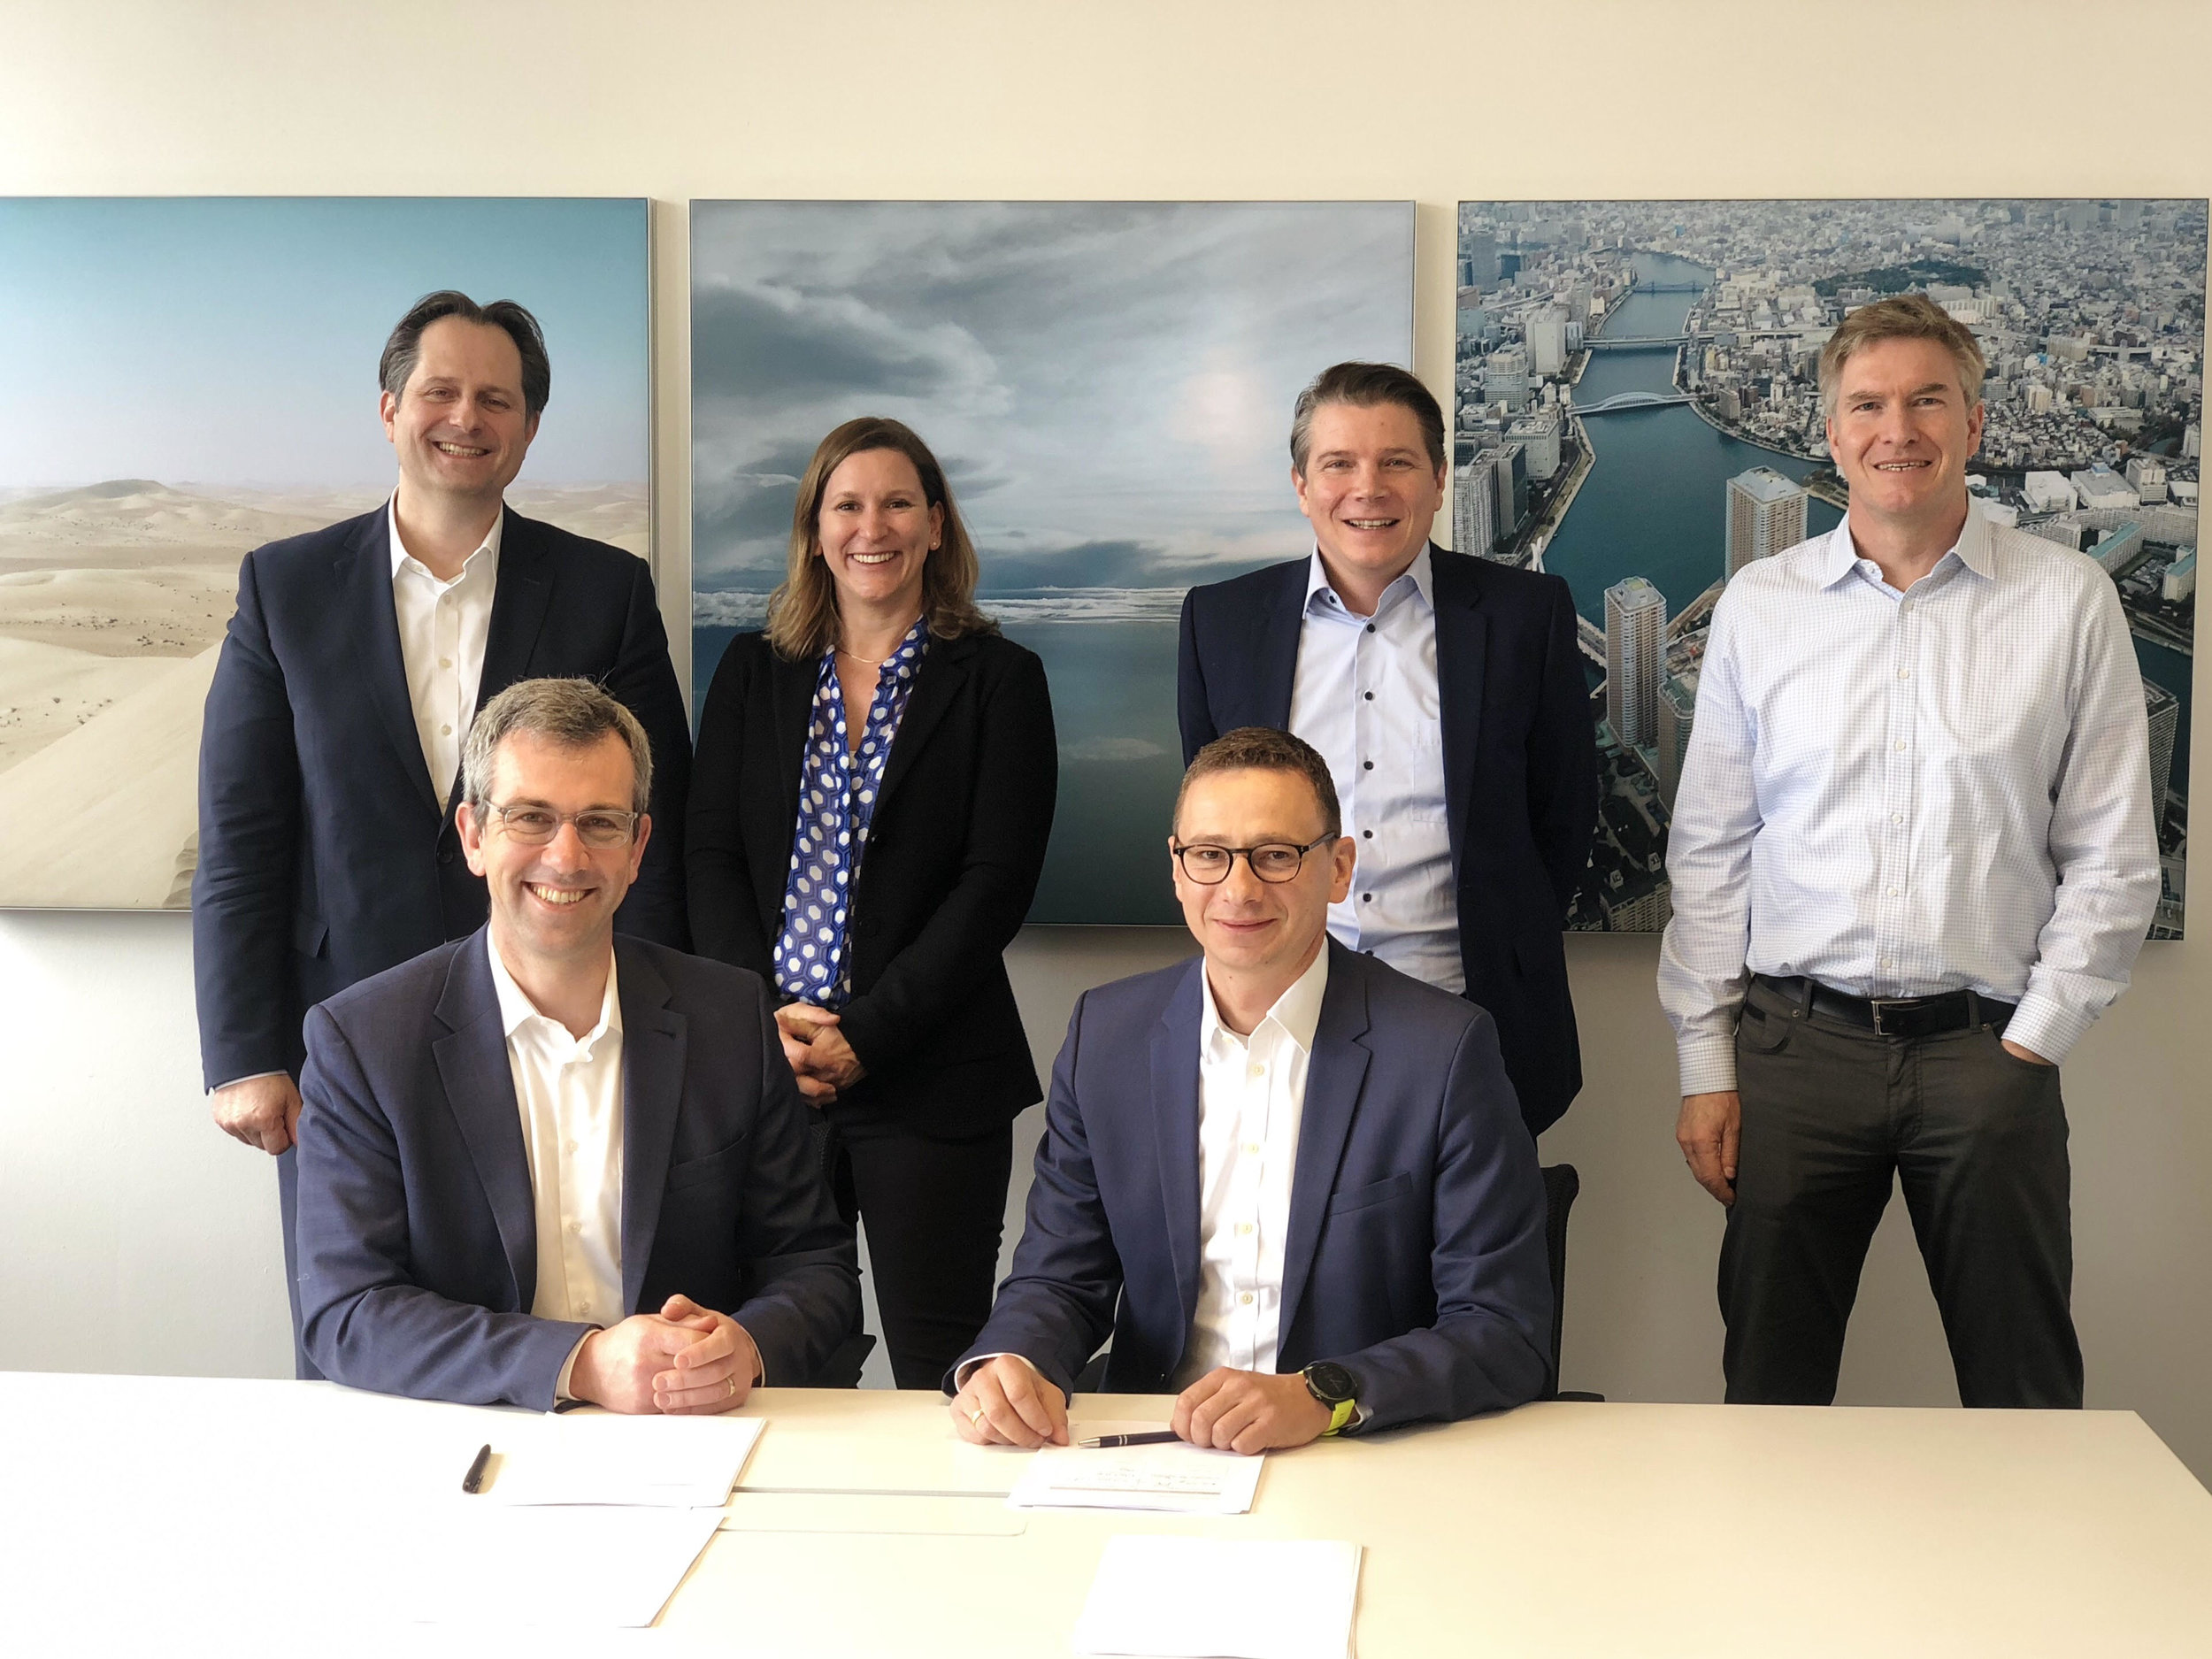 CarbonCure and Linde form their strategic alliance at the Linde office in Munich, Germany. Back from left to right: Stefan Zöllinger, Anne Schüessler, Ulrich Hanke, and Rolf Heninger of Application Technology at Linde. Front from left to right: Rob Niven, CEO & Founder of CarbonCure Technologies and Dr. Mathias Kranz, Head of Application Technology at Linde.